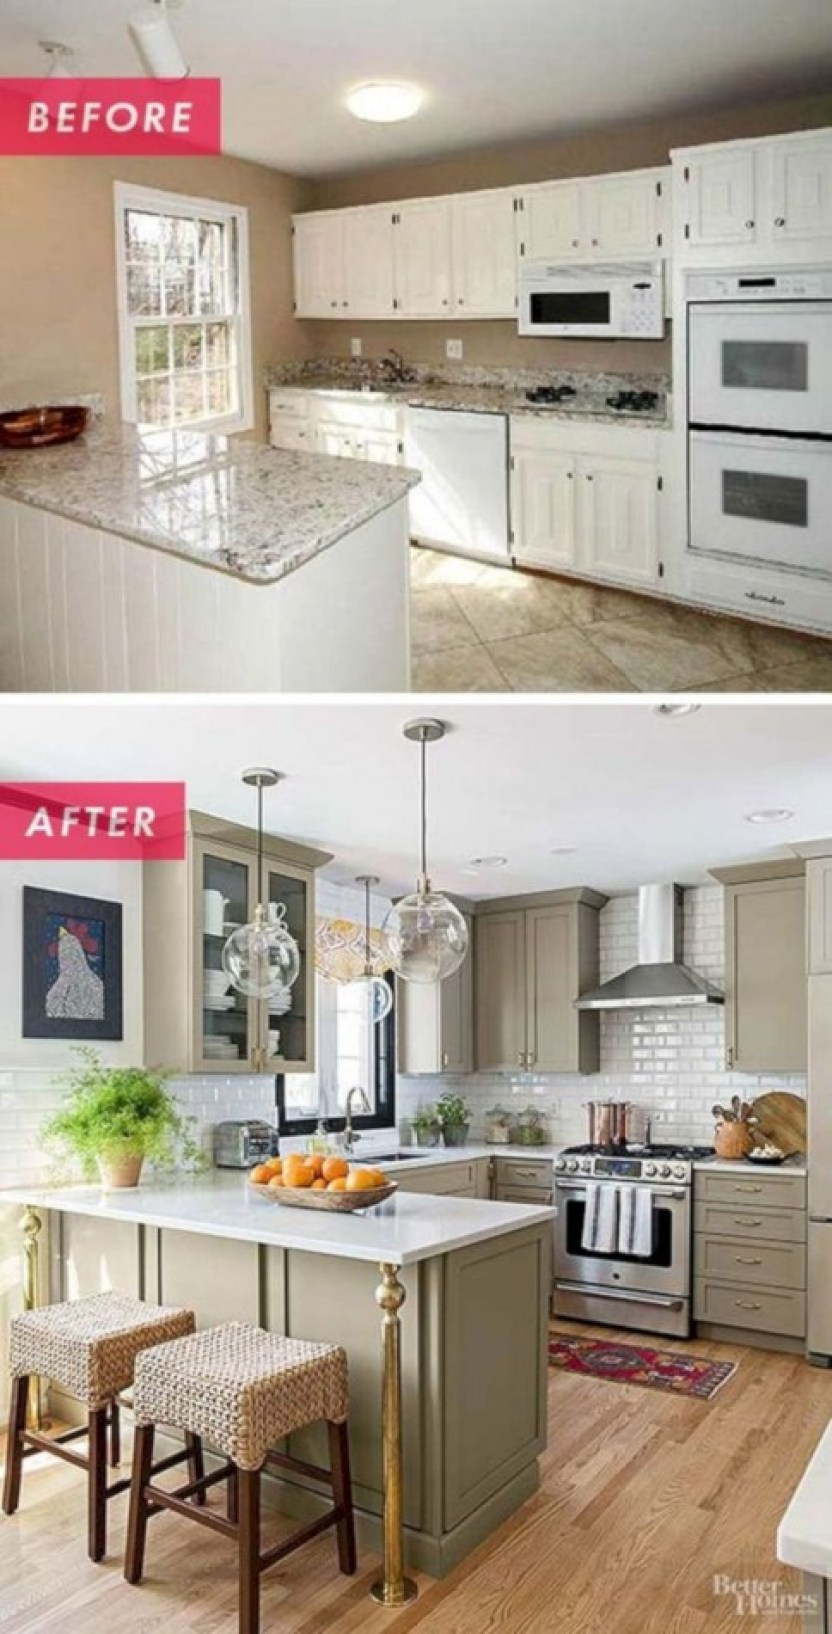 25+ Amazing Small Kitchen Remodel Ideas That Perfect For